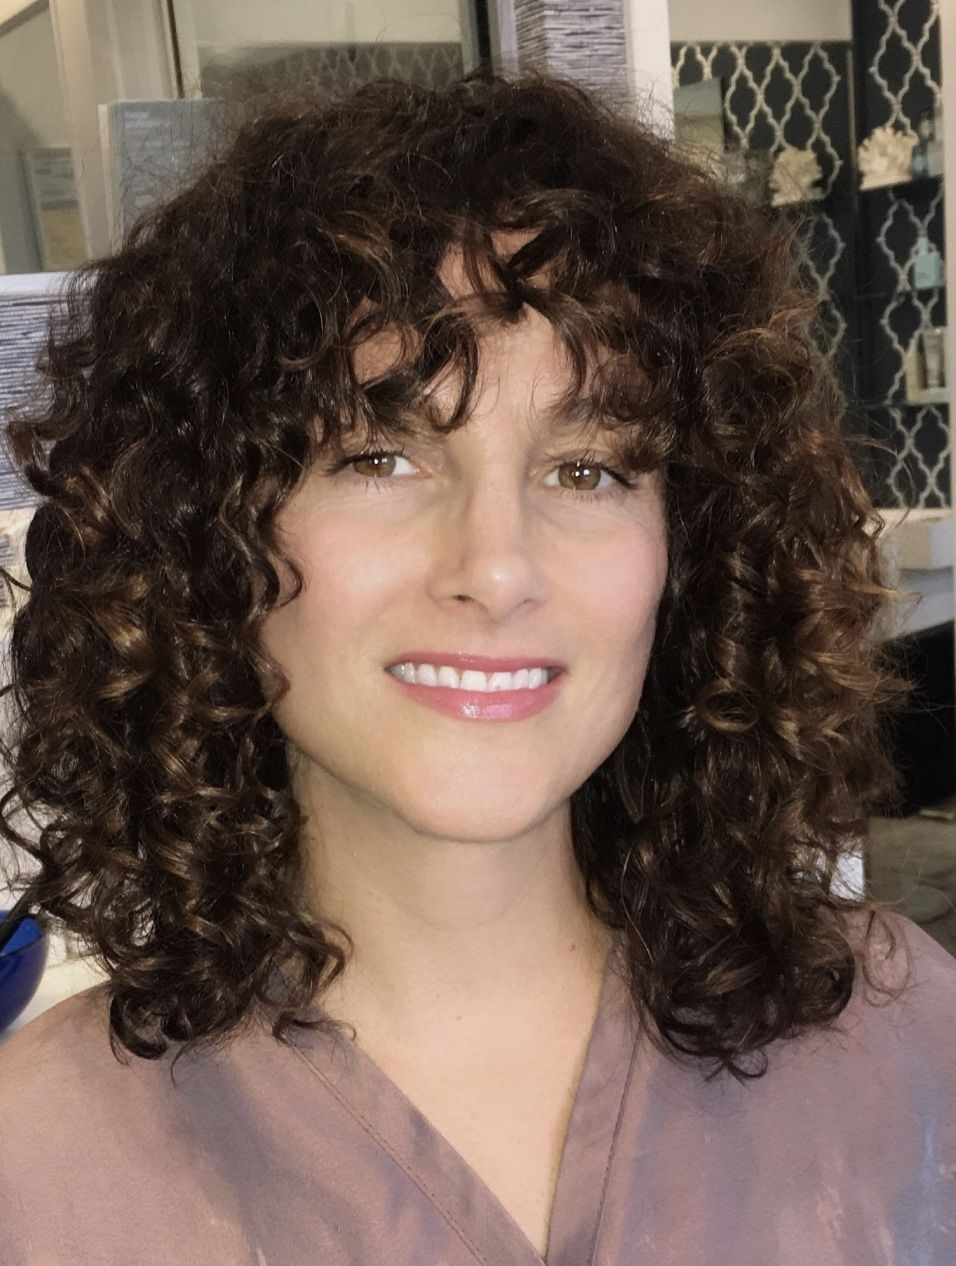 Haircut By Alenka Santa Monica Ca Beautiful Shorter Hair With Curly Hair Bangs Hairstyles With Bangs Curly Hair With Bangs Short Hair Styles